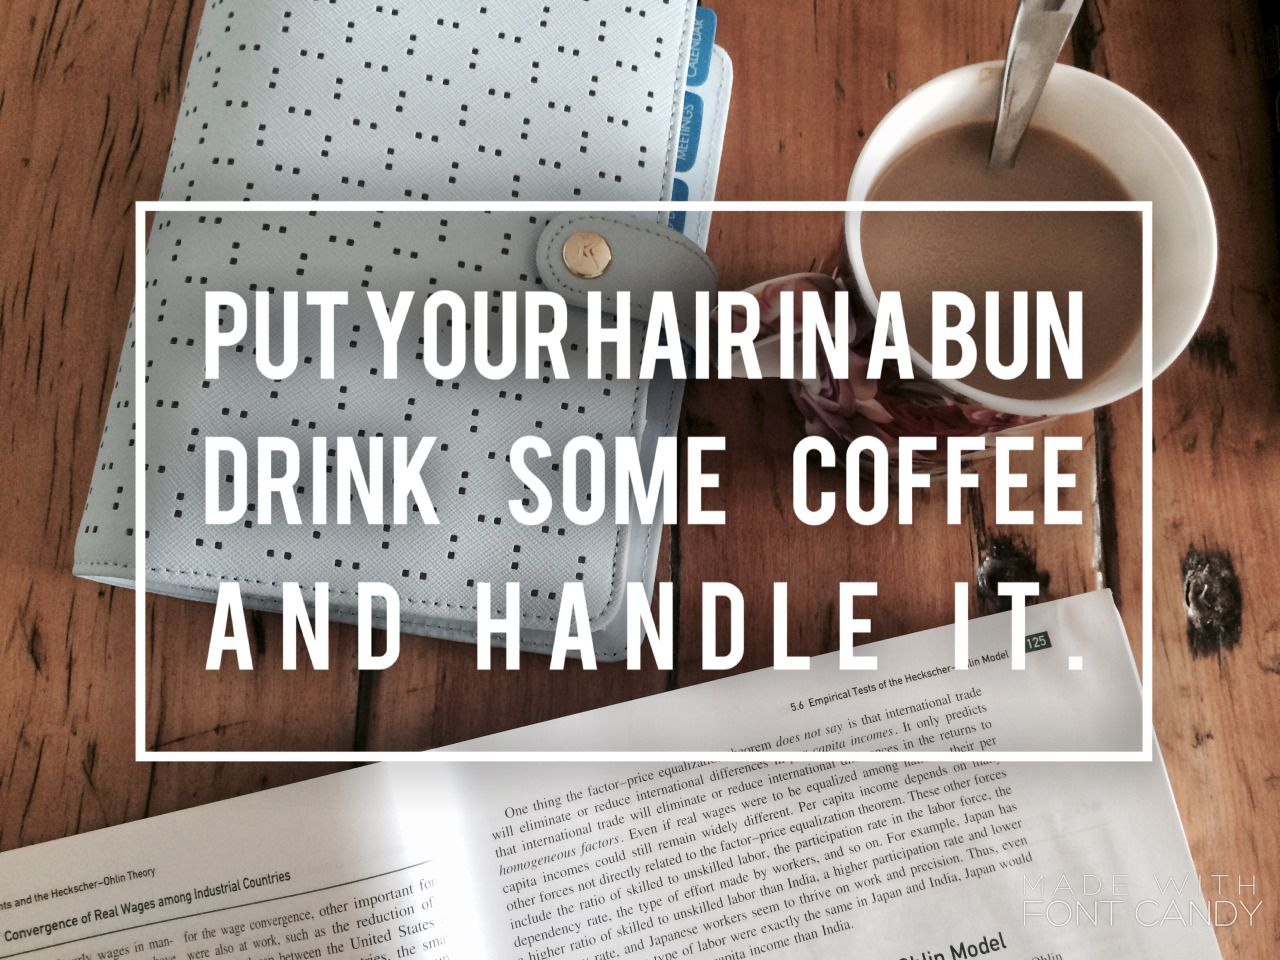 living-that-library-lifestyle: Handle it ☕️